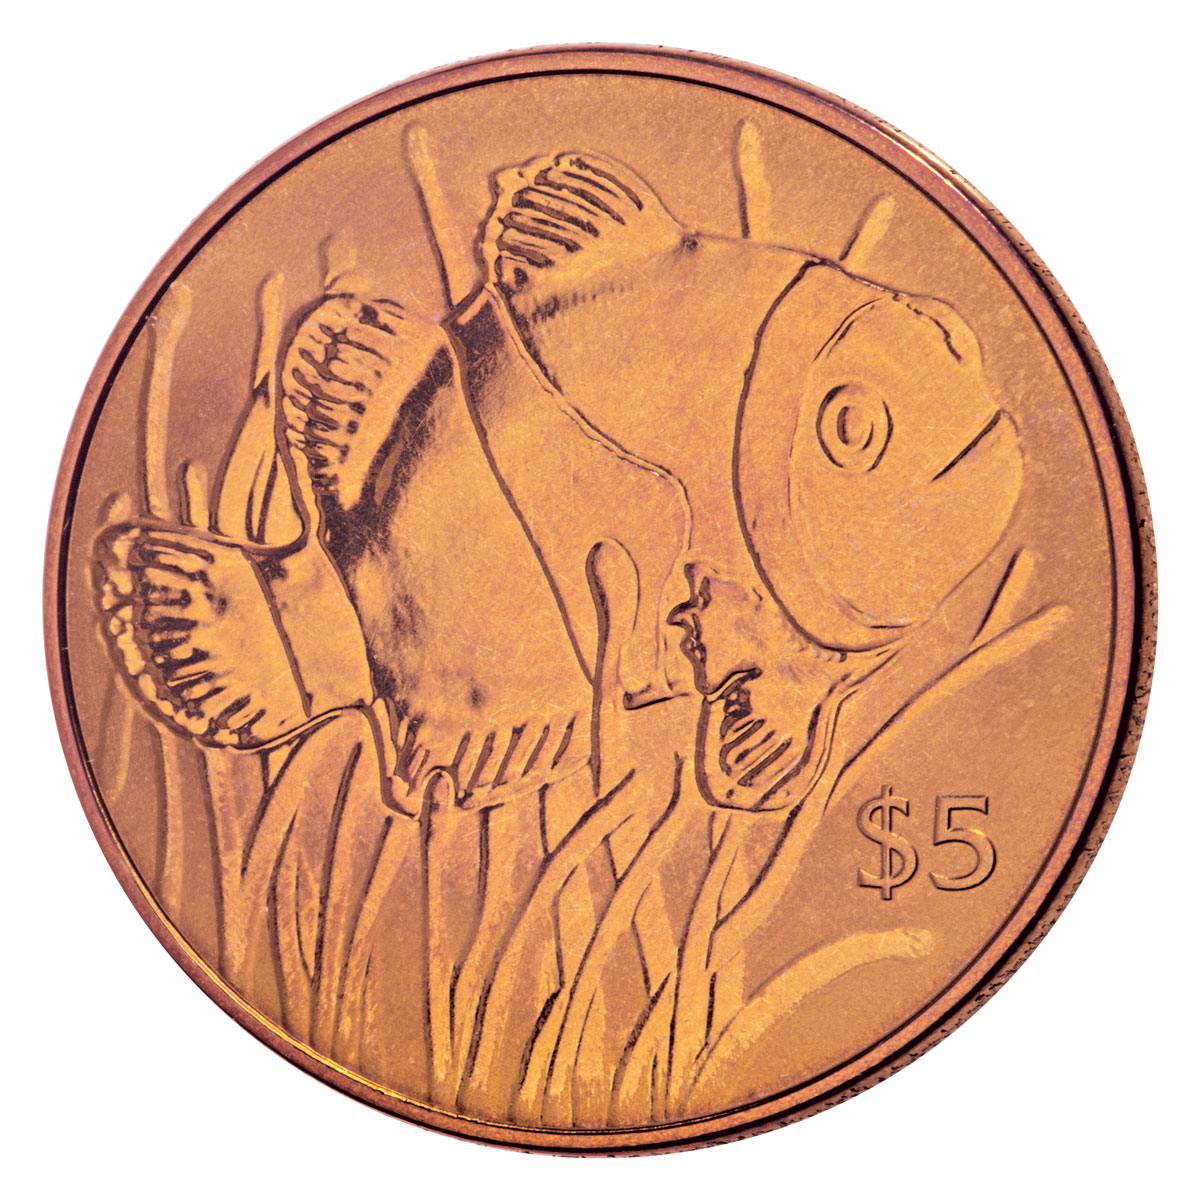 2018 British Virgin Islands Clownfish 10 g Orange Titanium $5 Coin GEM BU